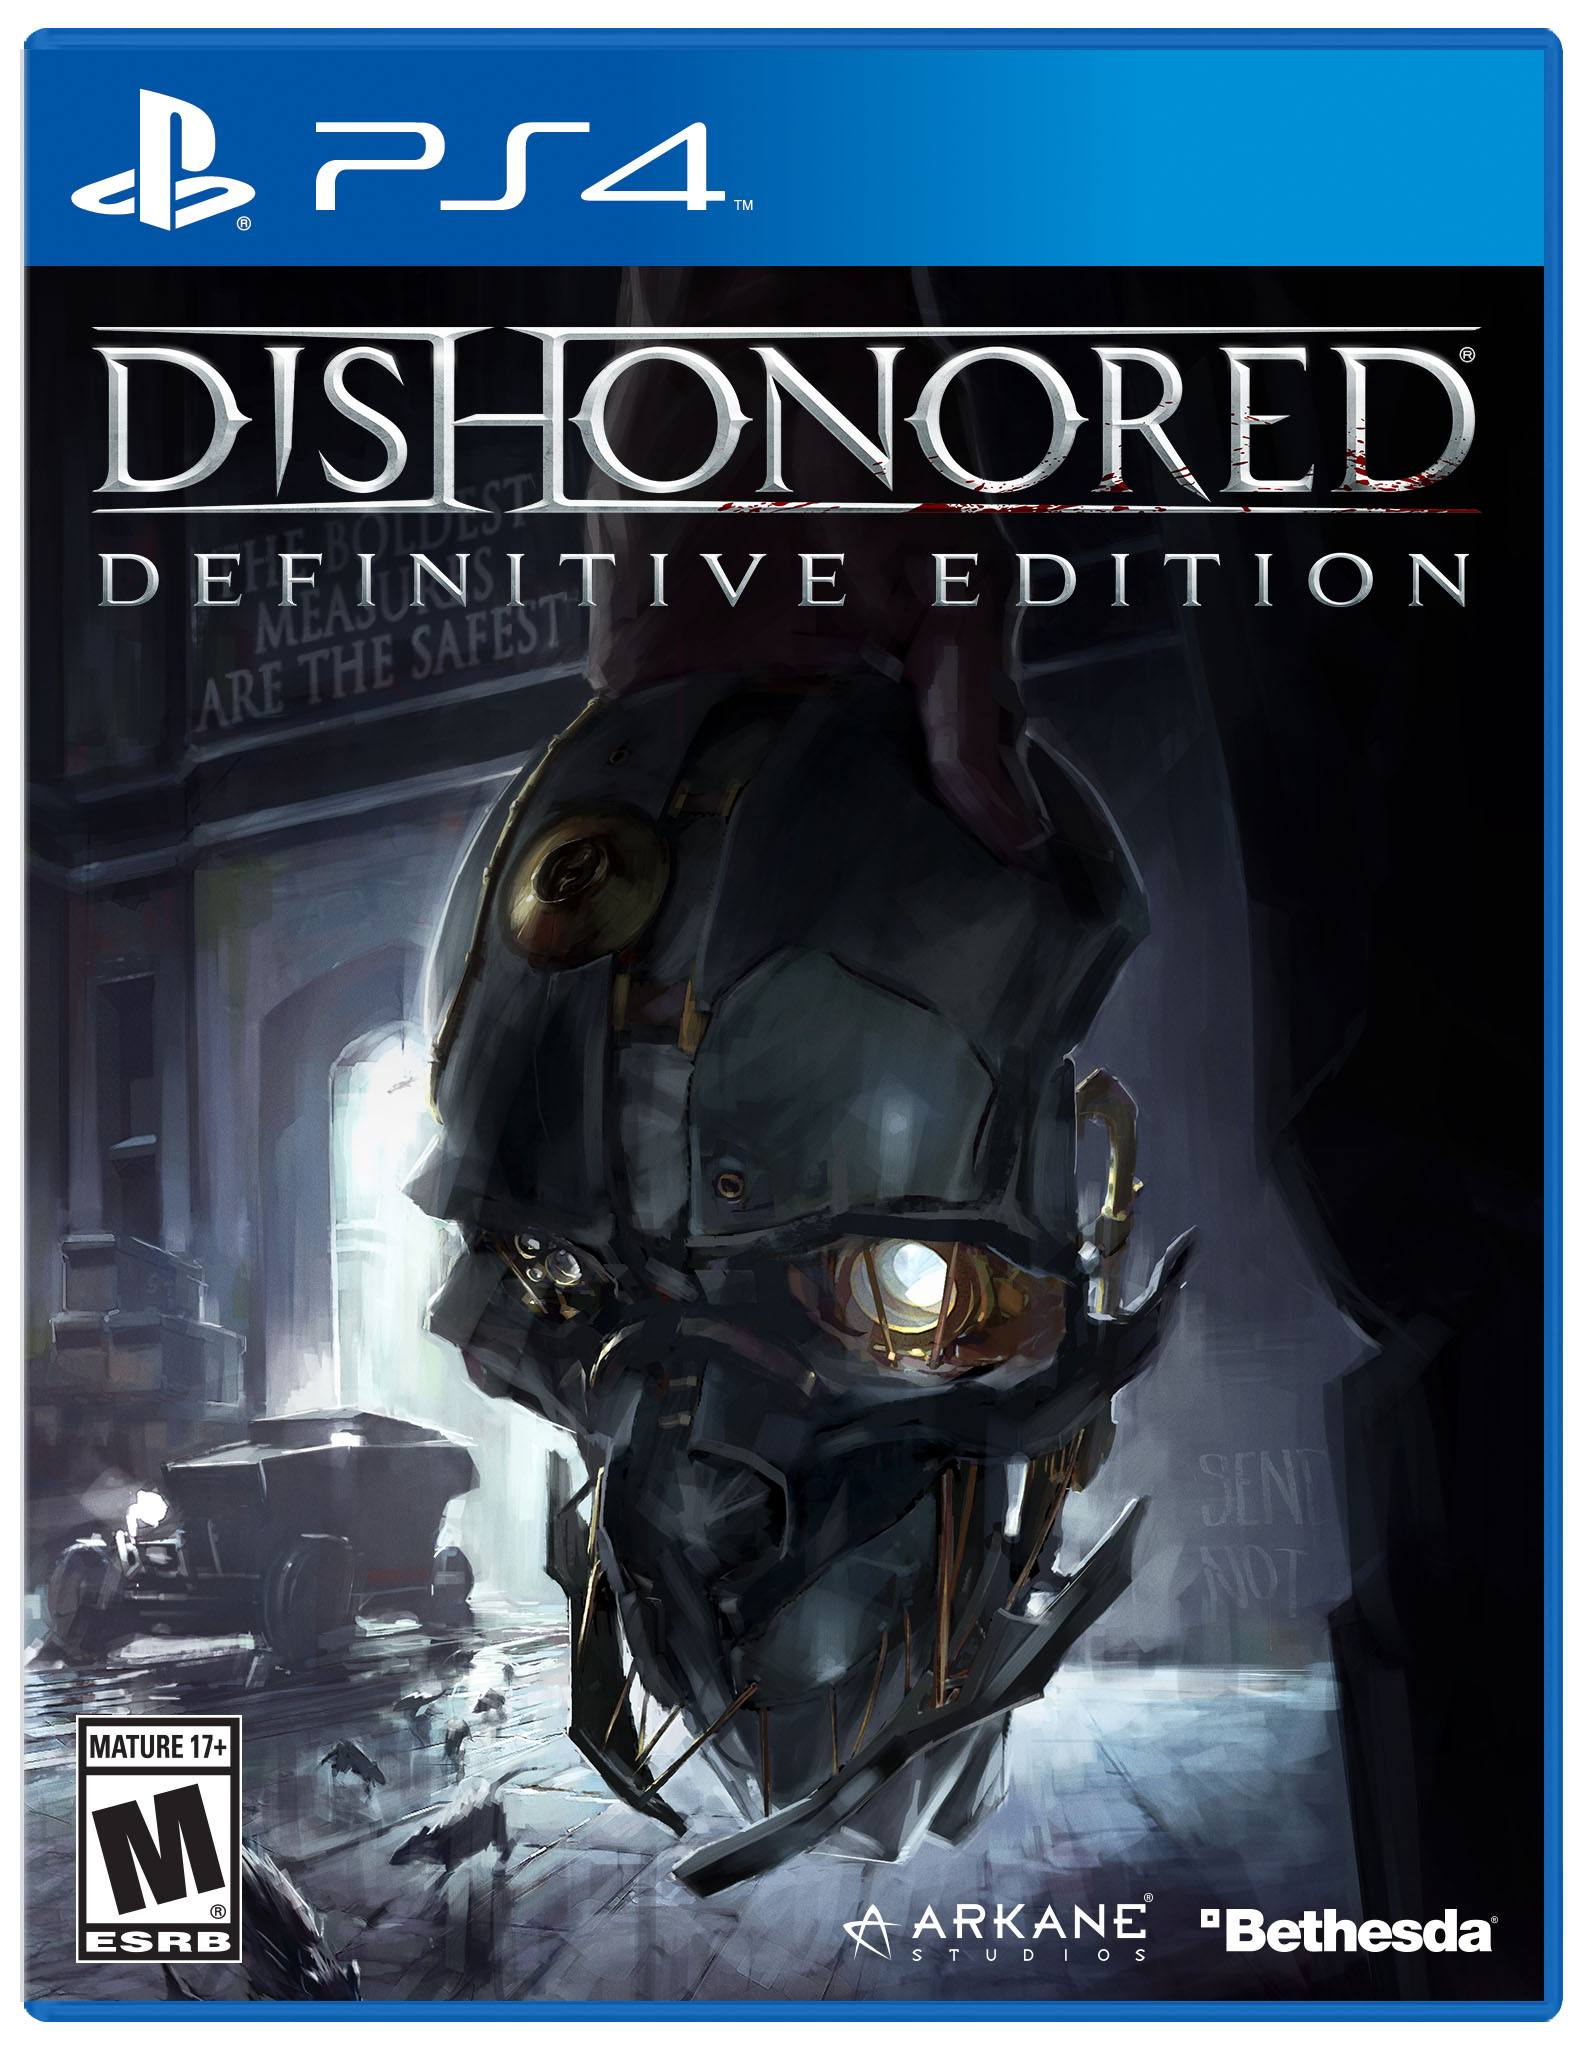 Dishonored definitive edition xbox one review